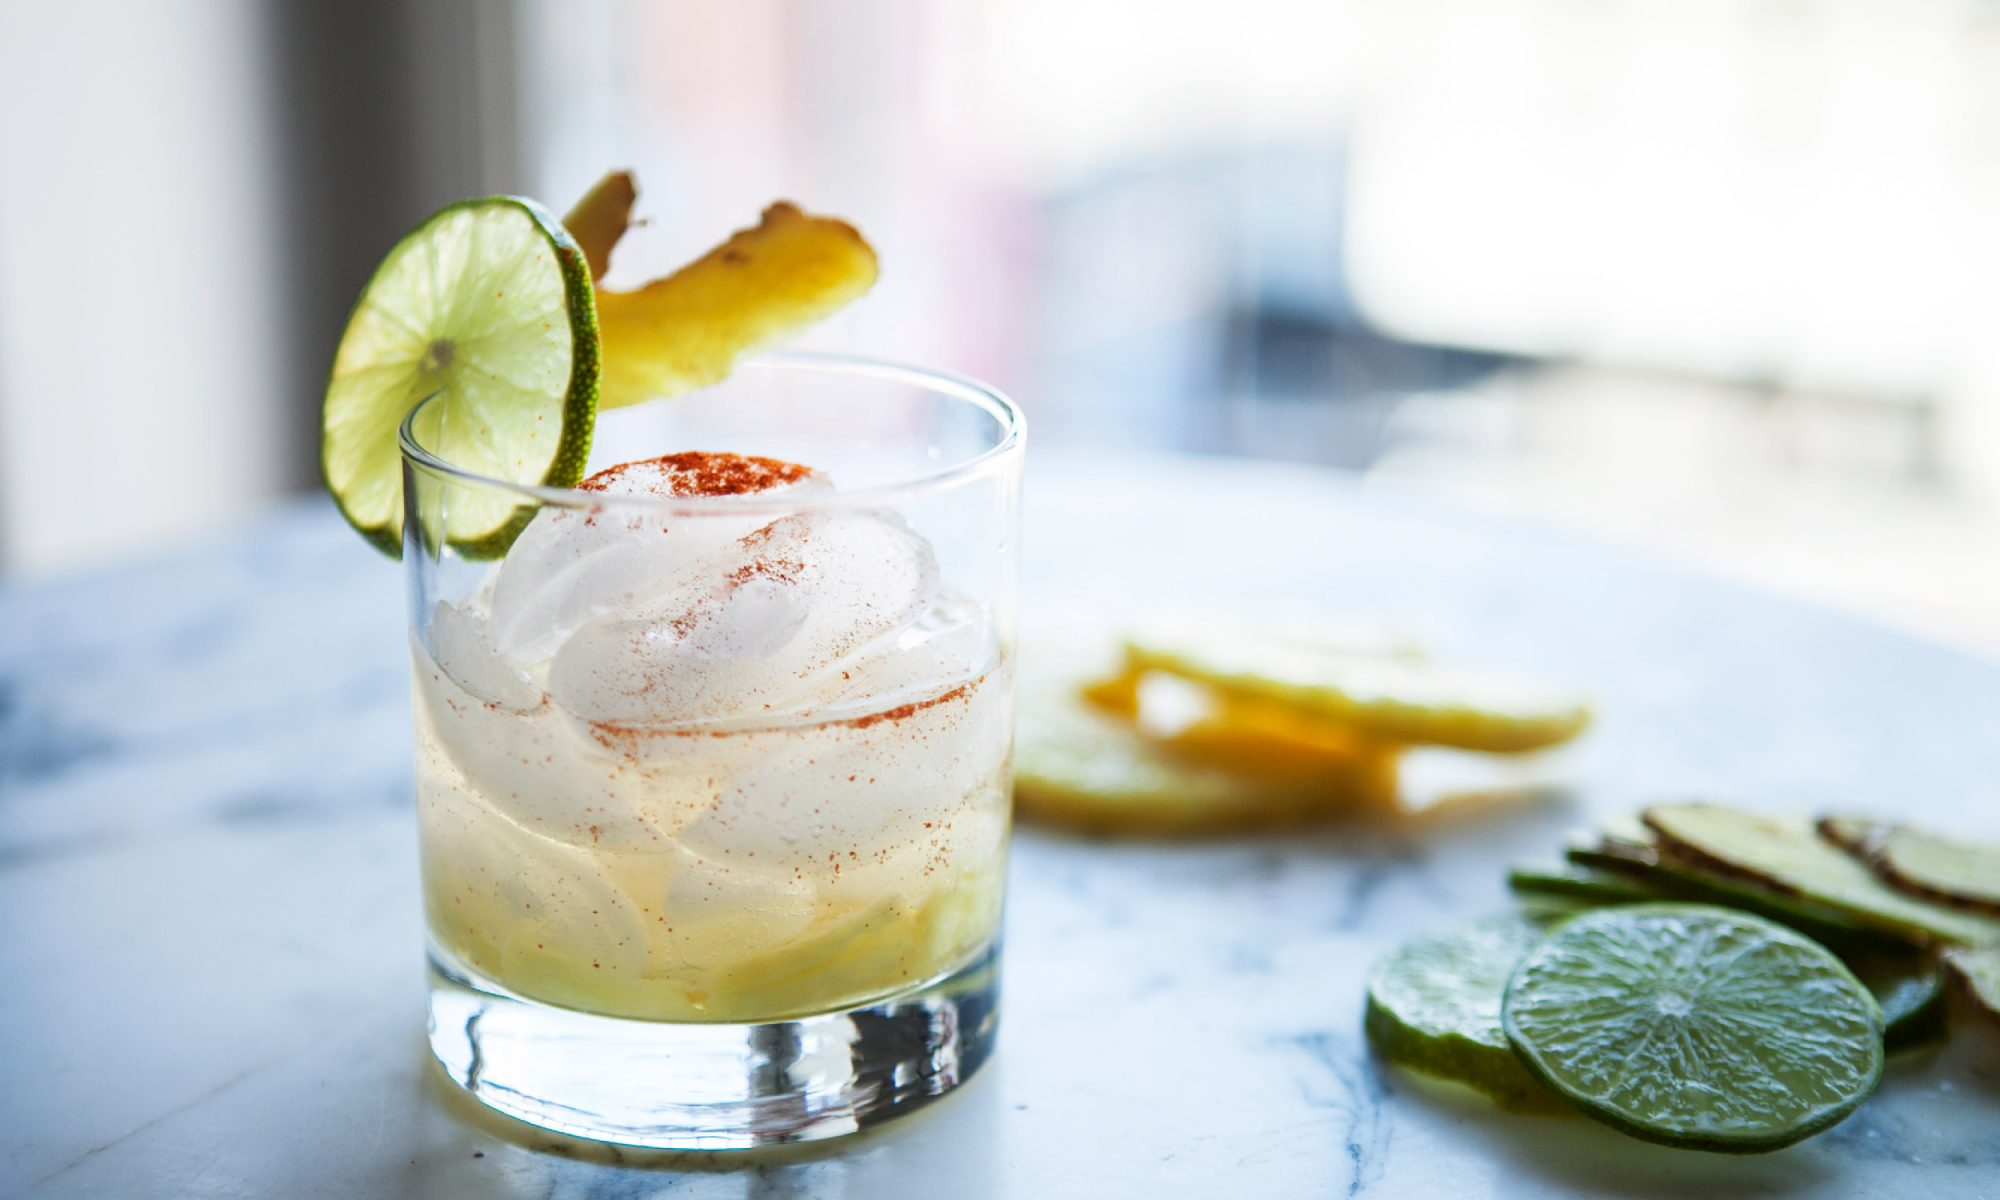 This Cocktail Is Just What the Doctor Ordered